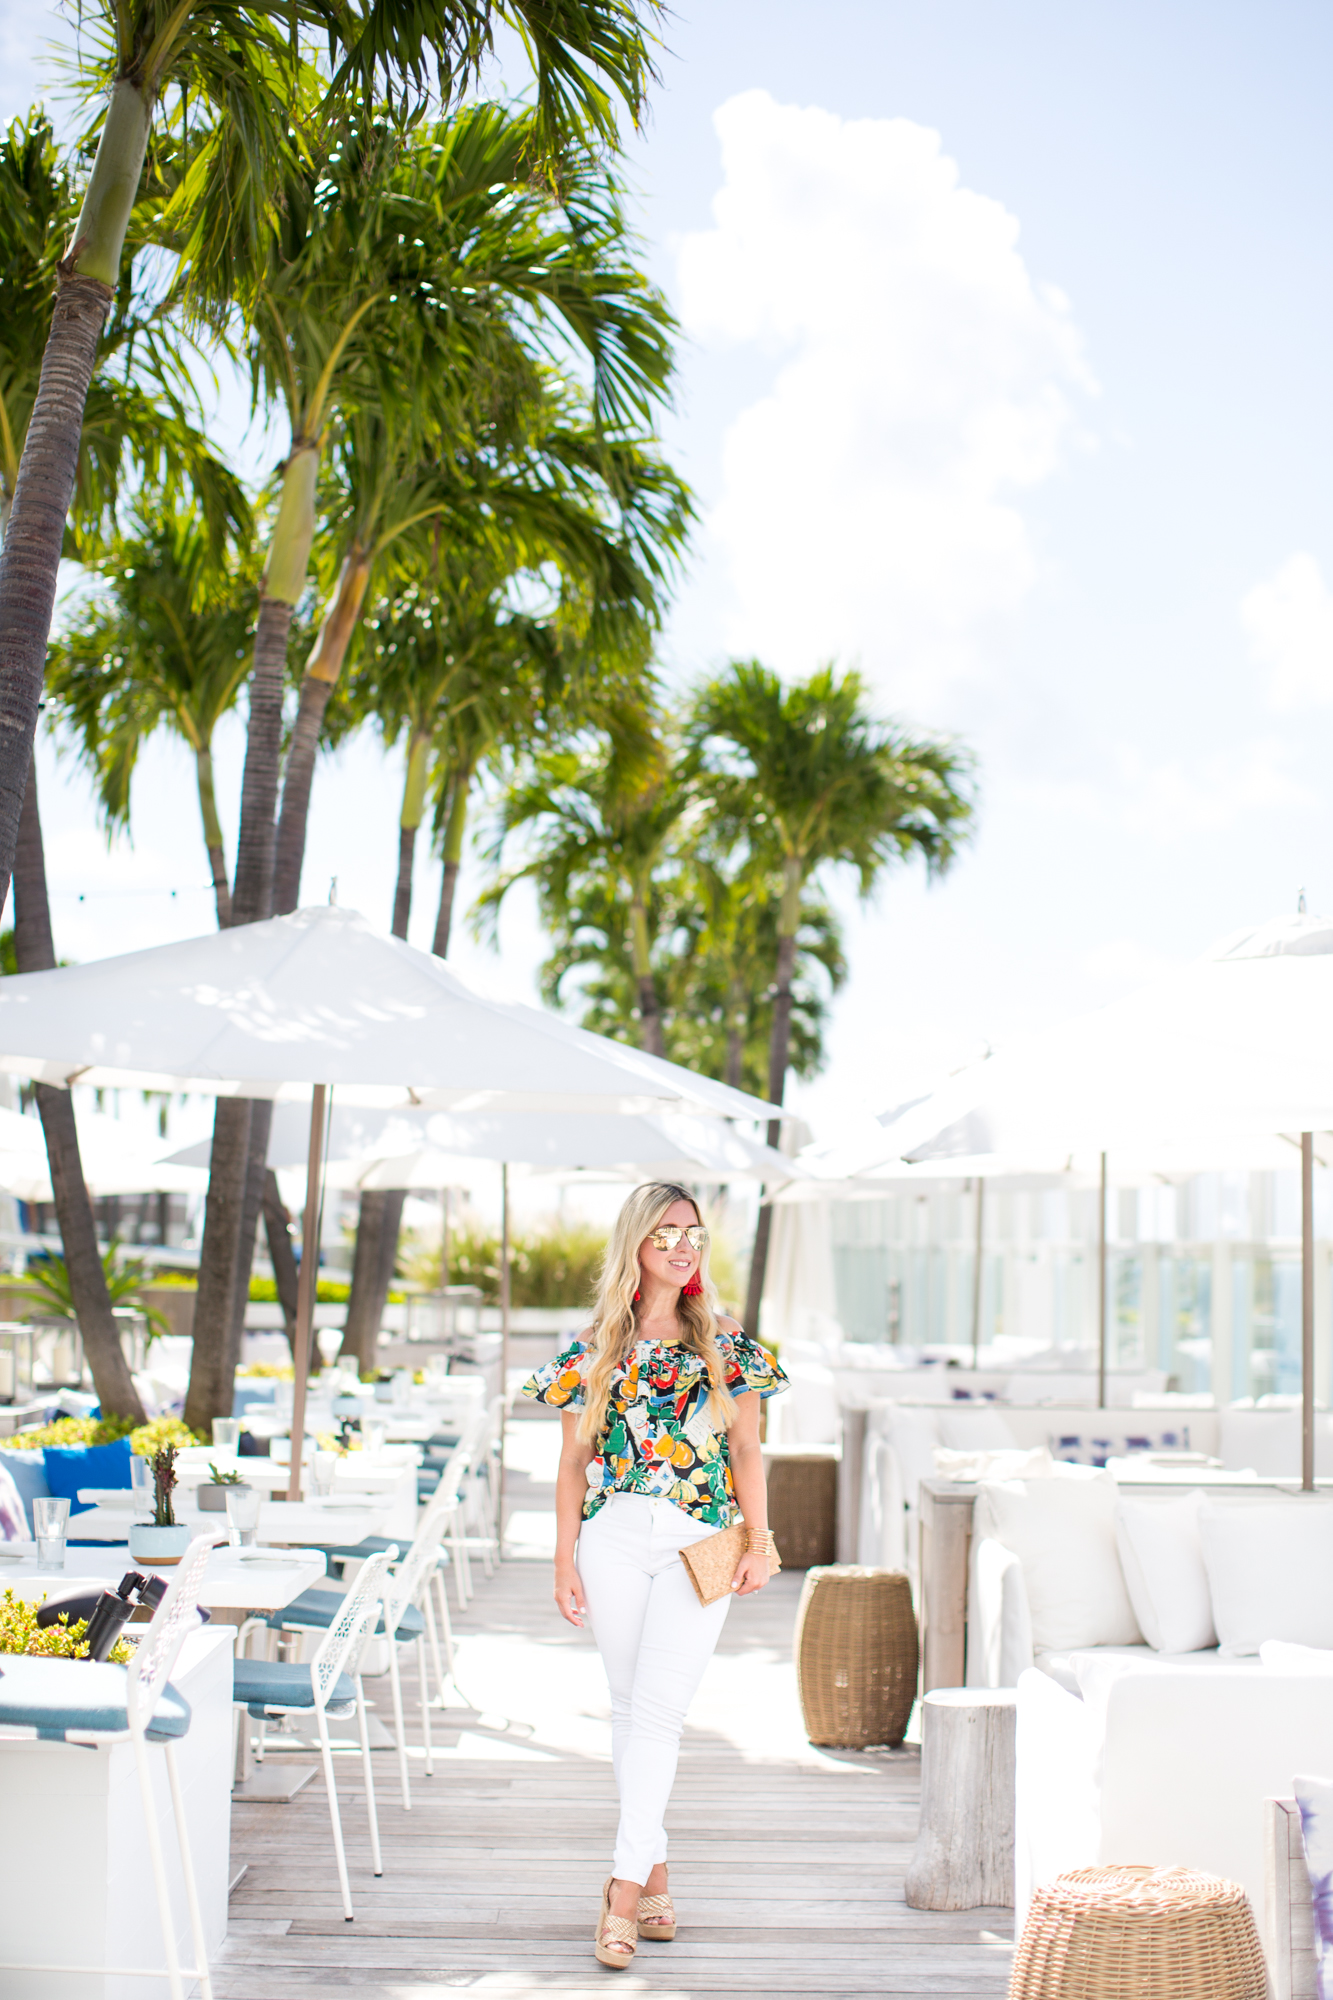 Post Cards From Miami | The Darling Petite Diva